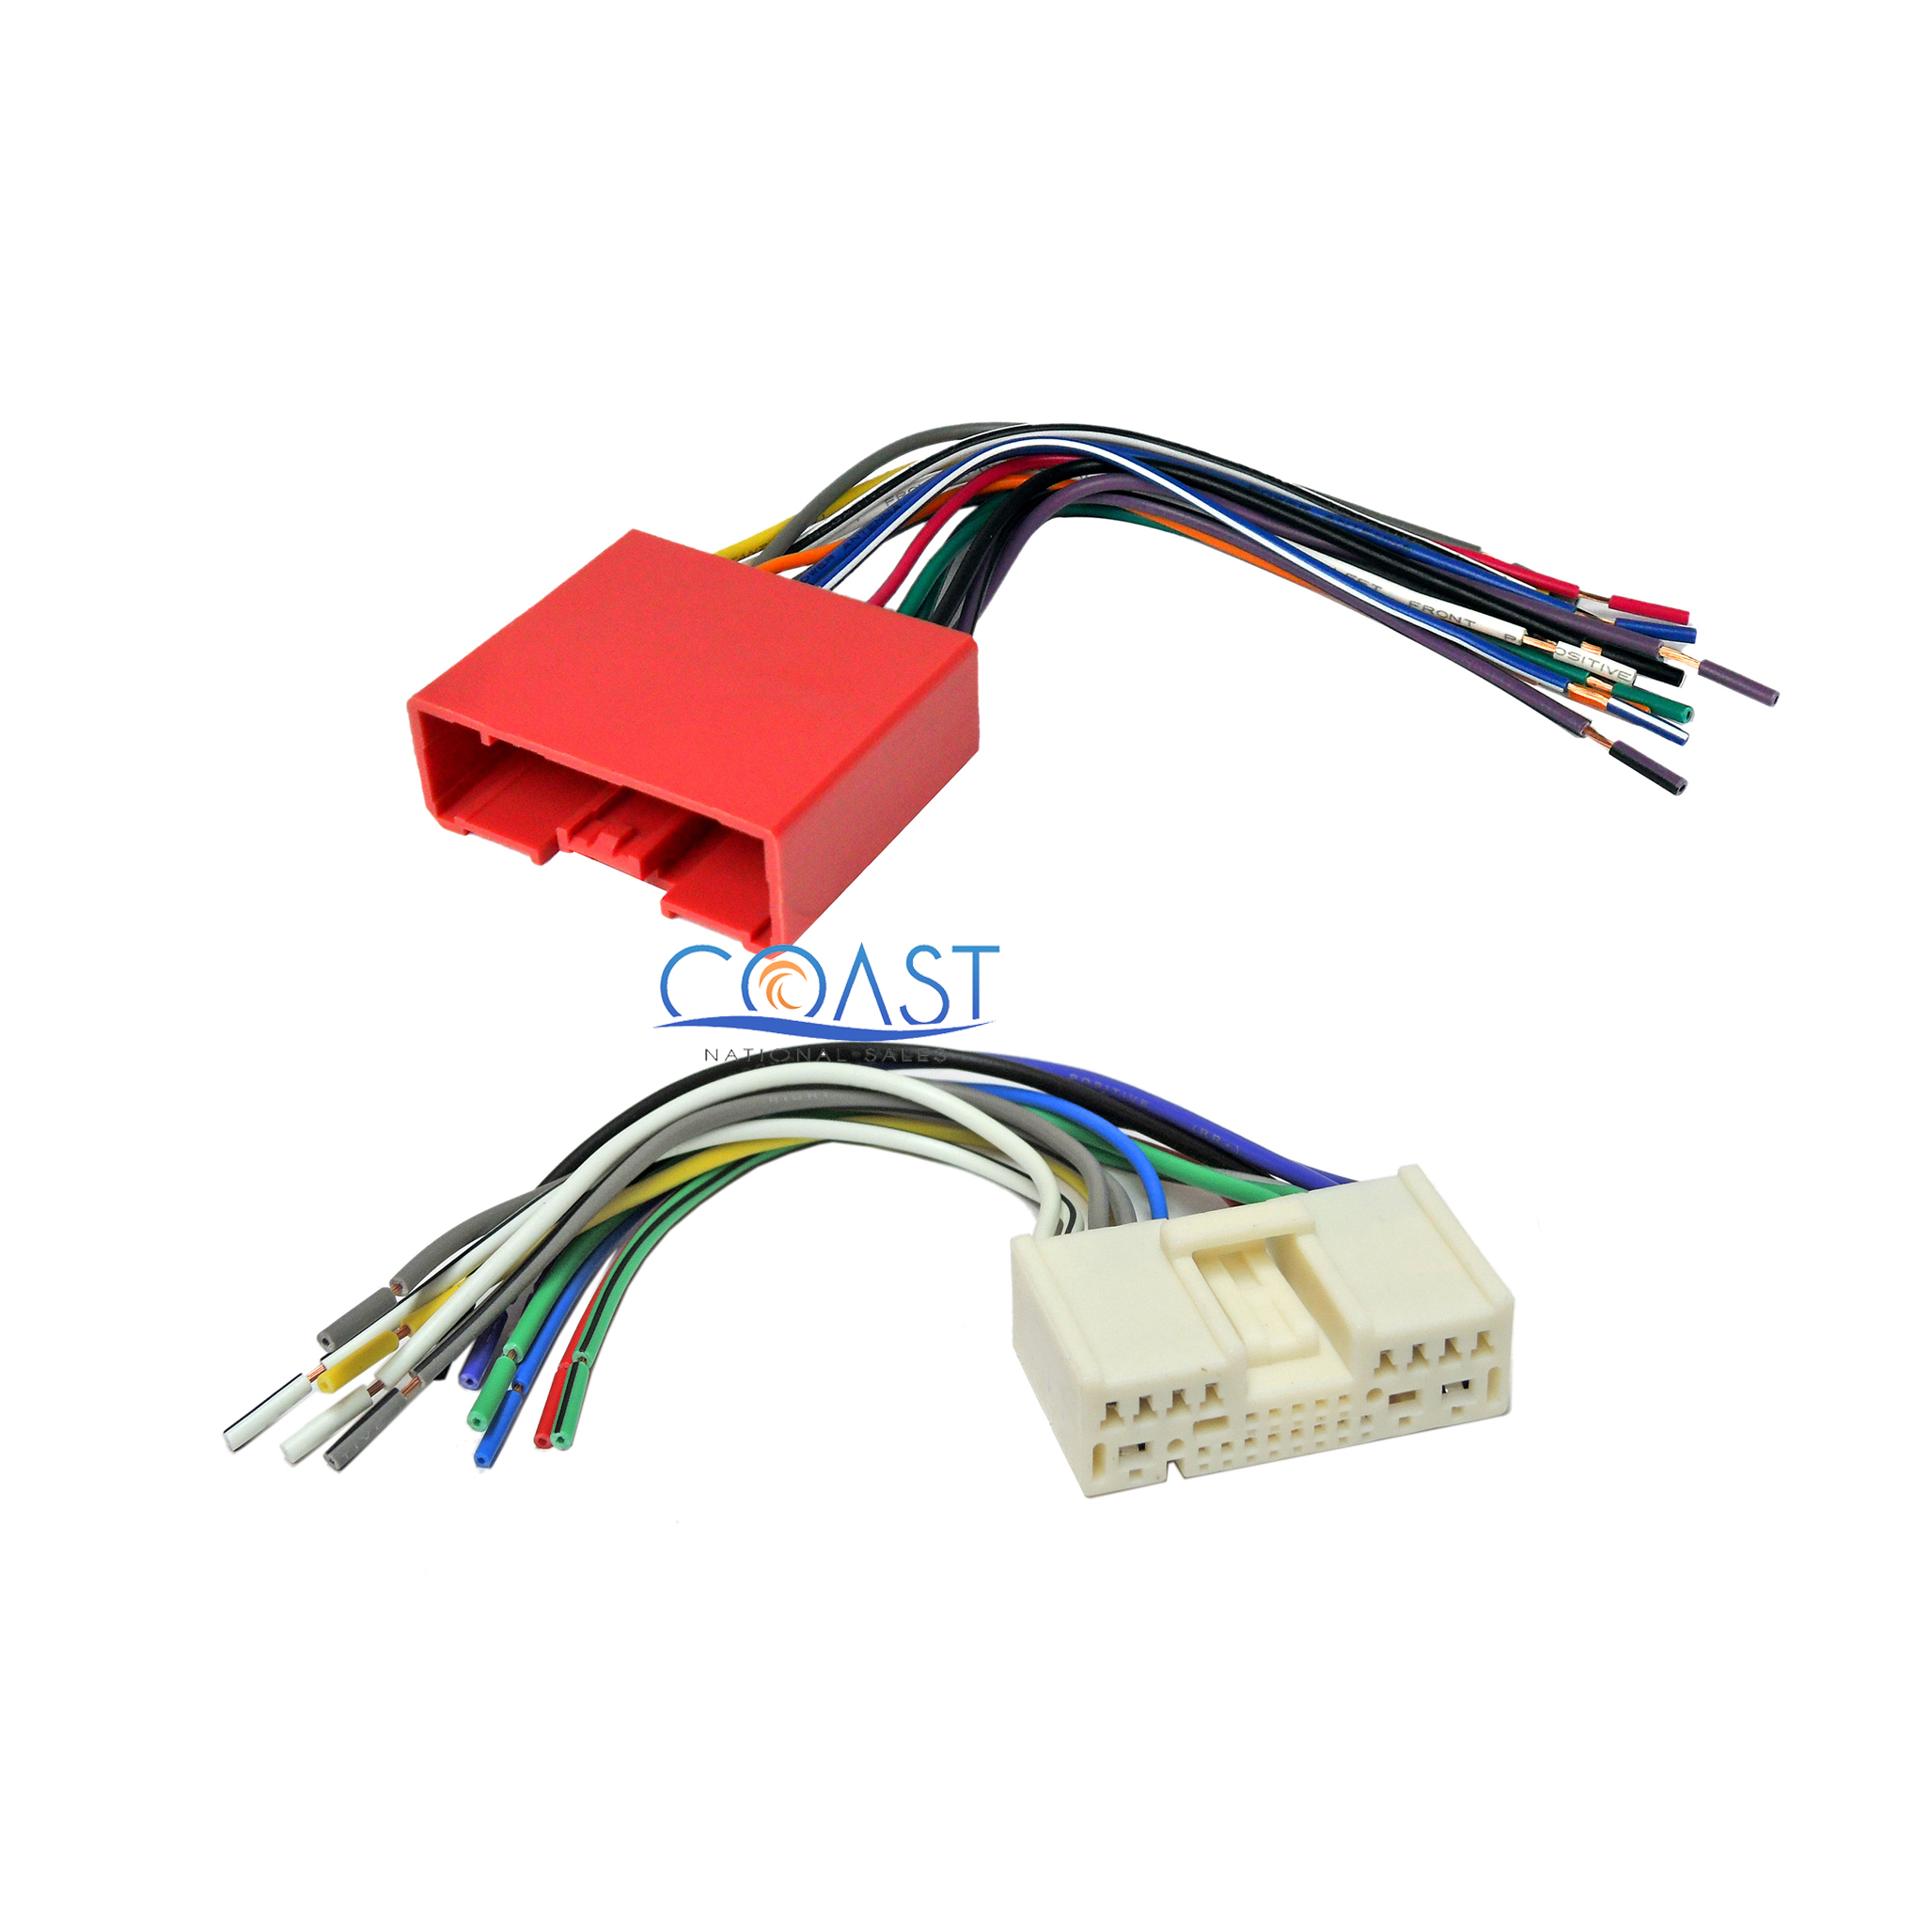 2003 Mazda Protege Radio Wiring: Car Stereo Radio Installation Wire Wiring Harness Set For